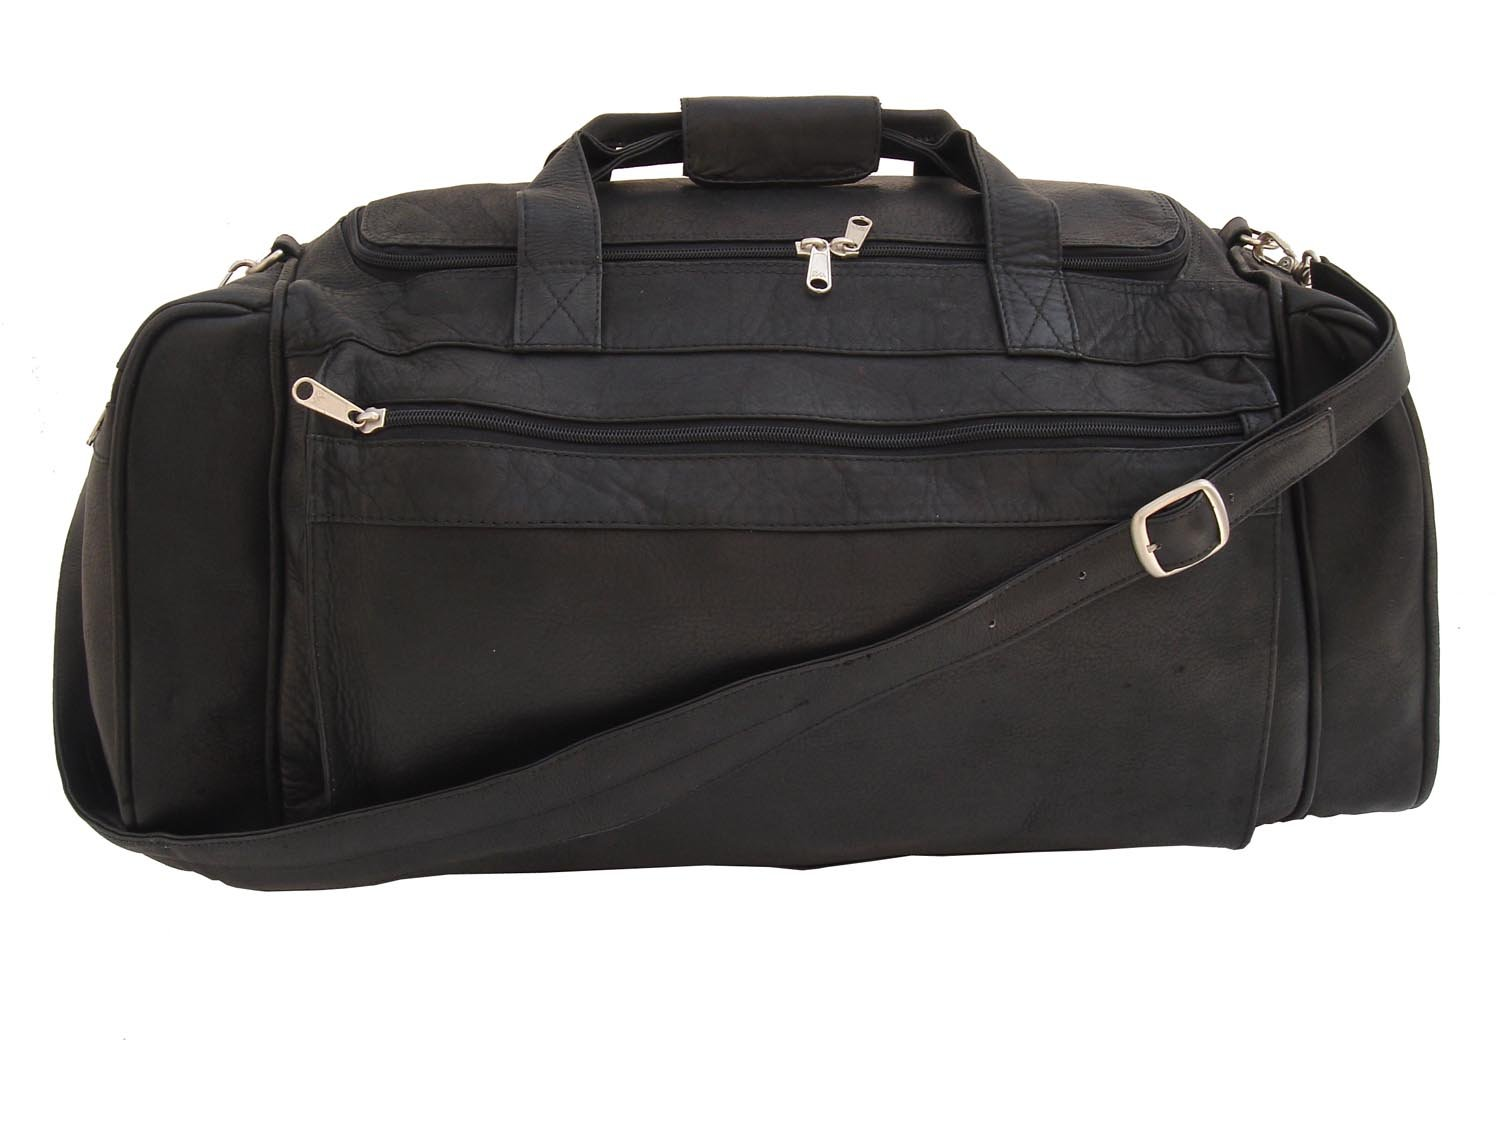 Piel Leather Large Duffel Bag in Black by Piel Leather